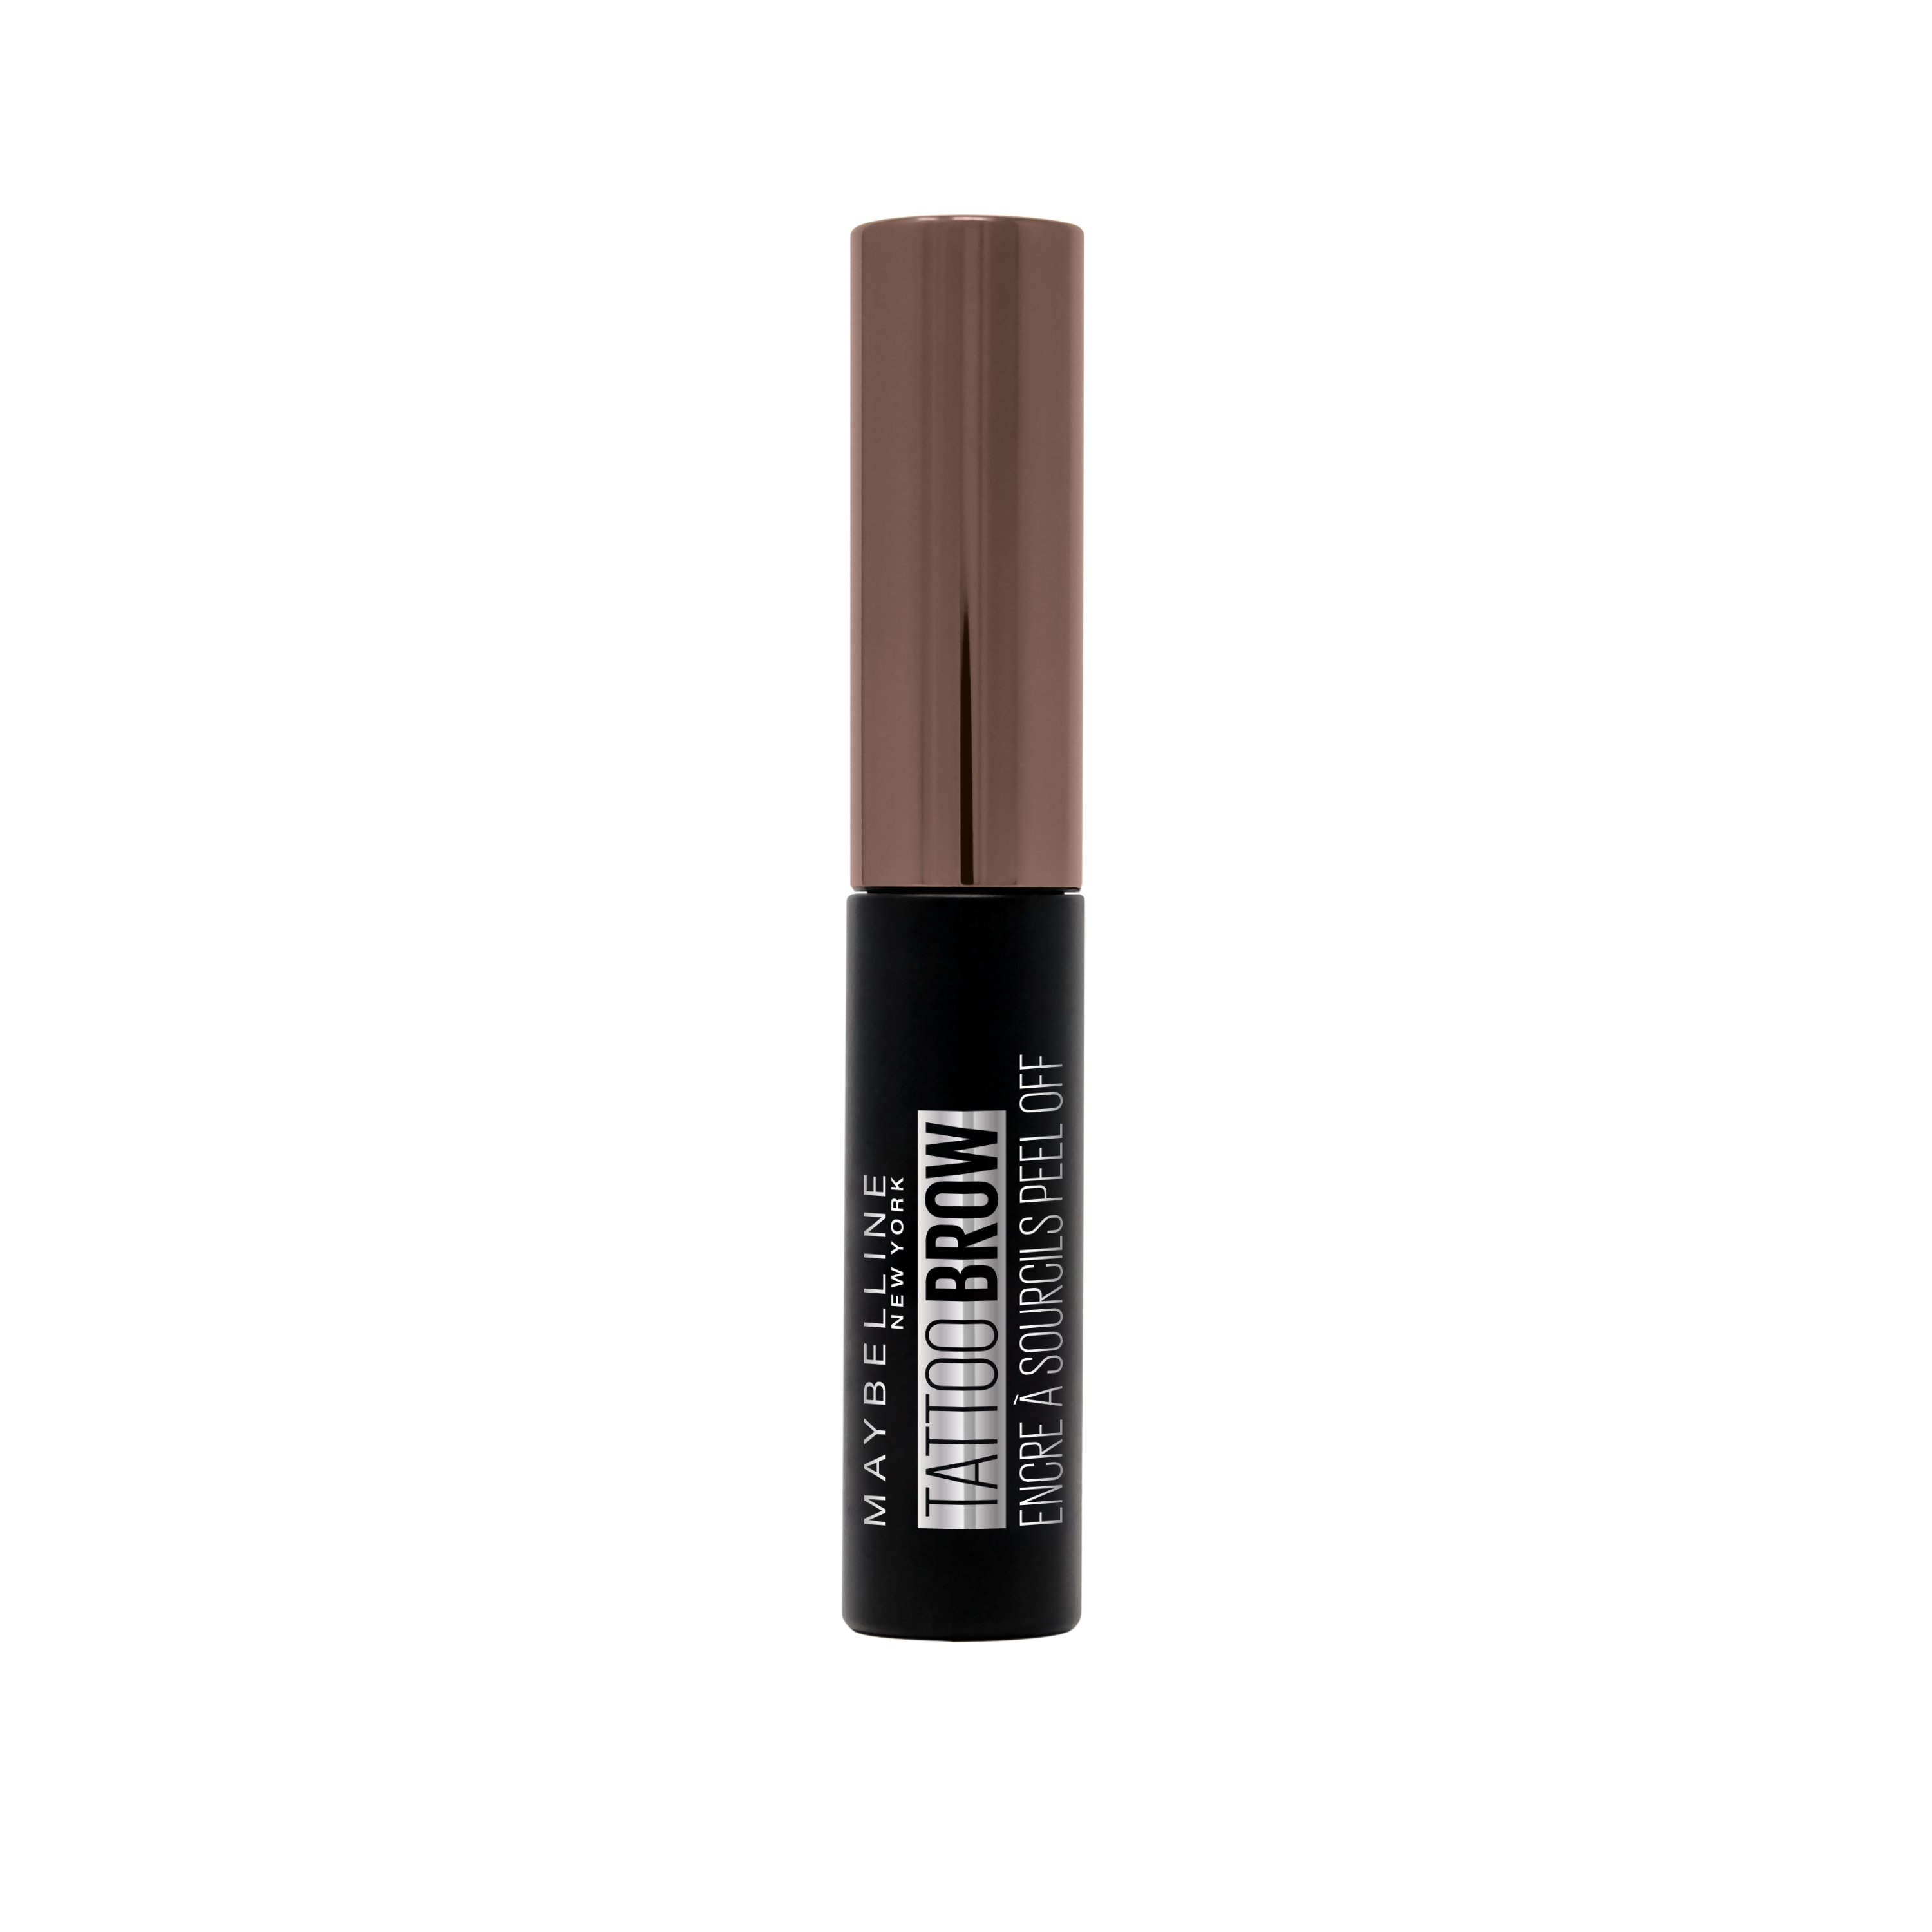 Maybelline - Tattoo Brow Gel Tint Eyebrow color - 15 Warm Brown